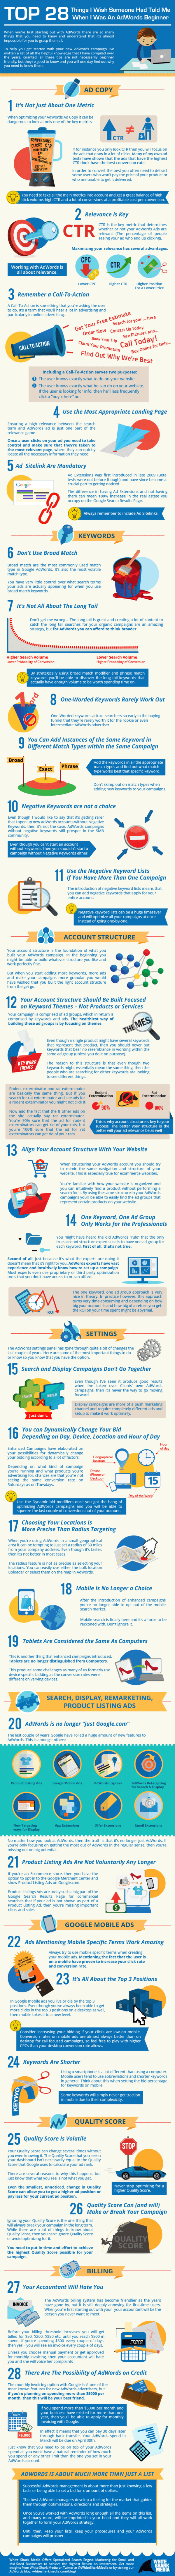 Google AdWords infographie